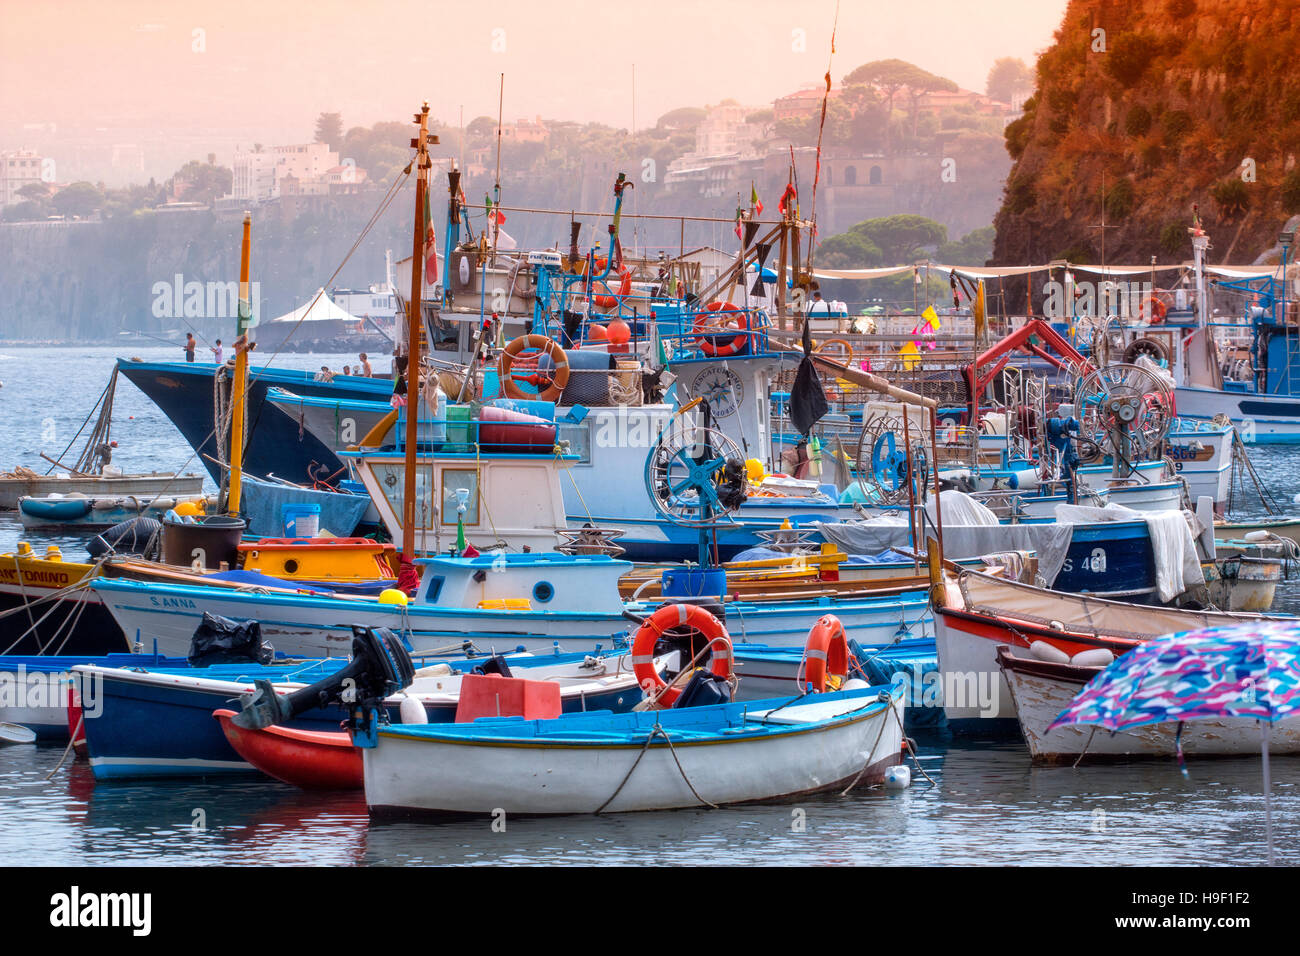 The Harbour of Sorrento, Gulf of Naples, Campania, Italy - Stock Image